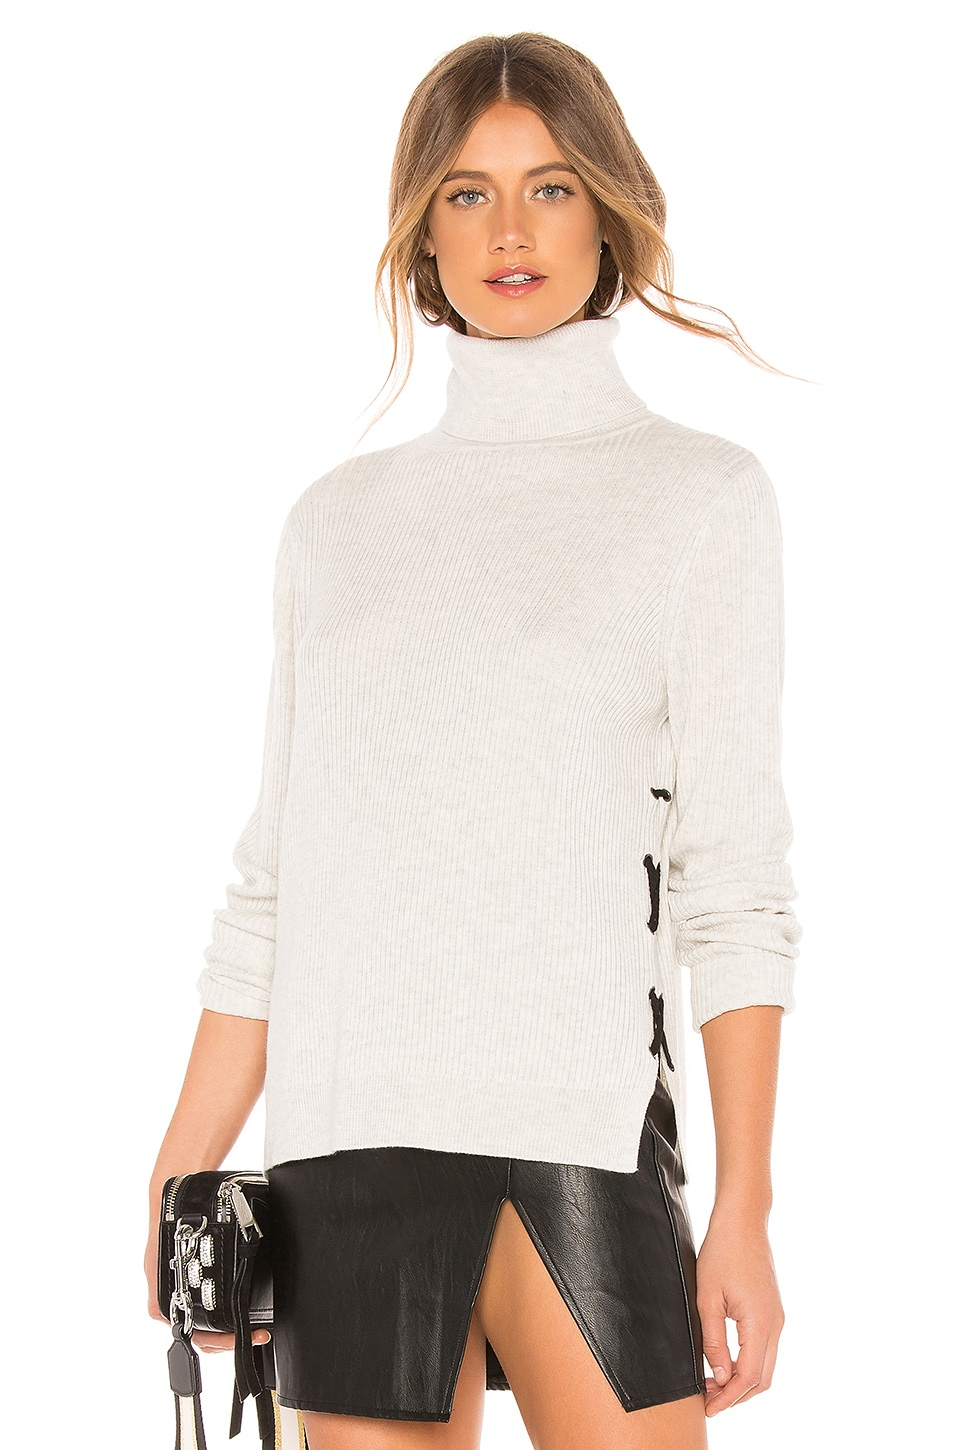 JOHN & JENN BY LINE Max Sweater in Light Gray